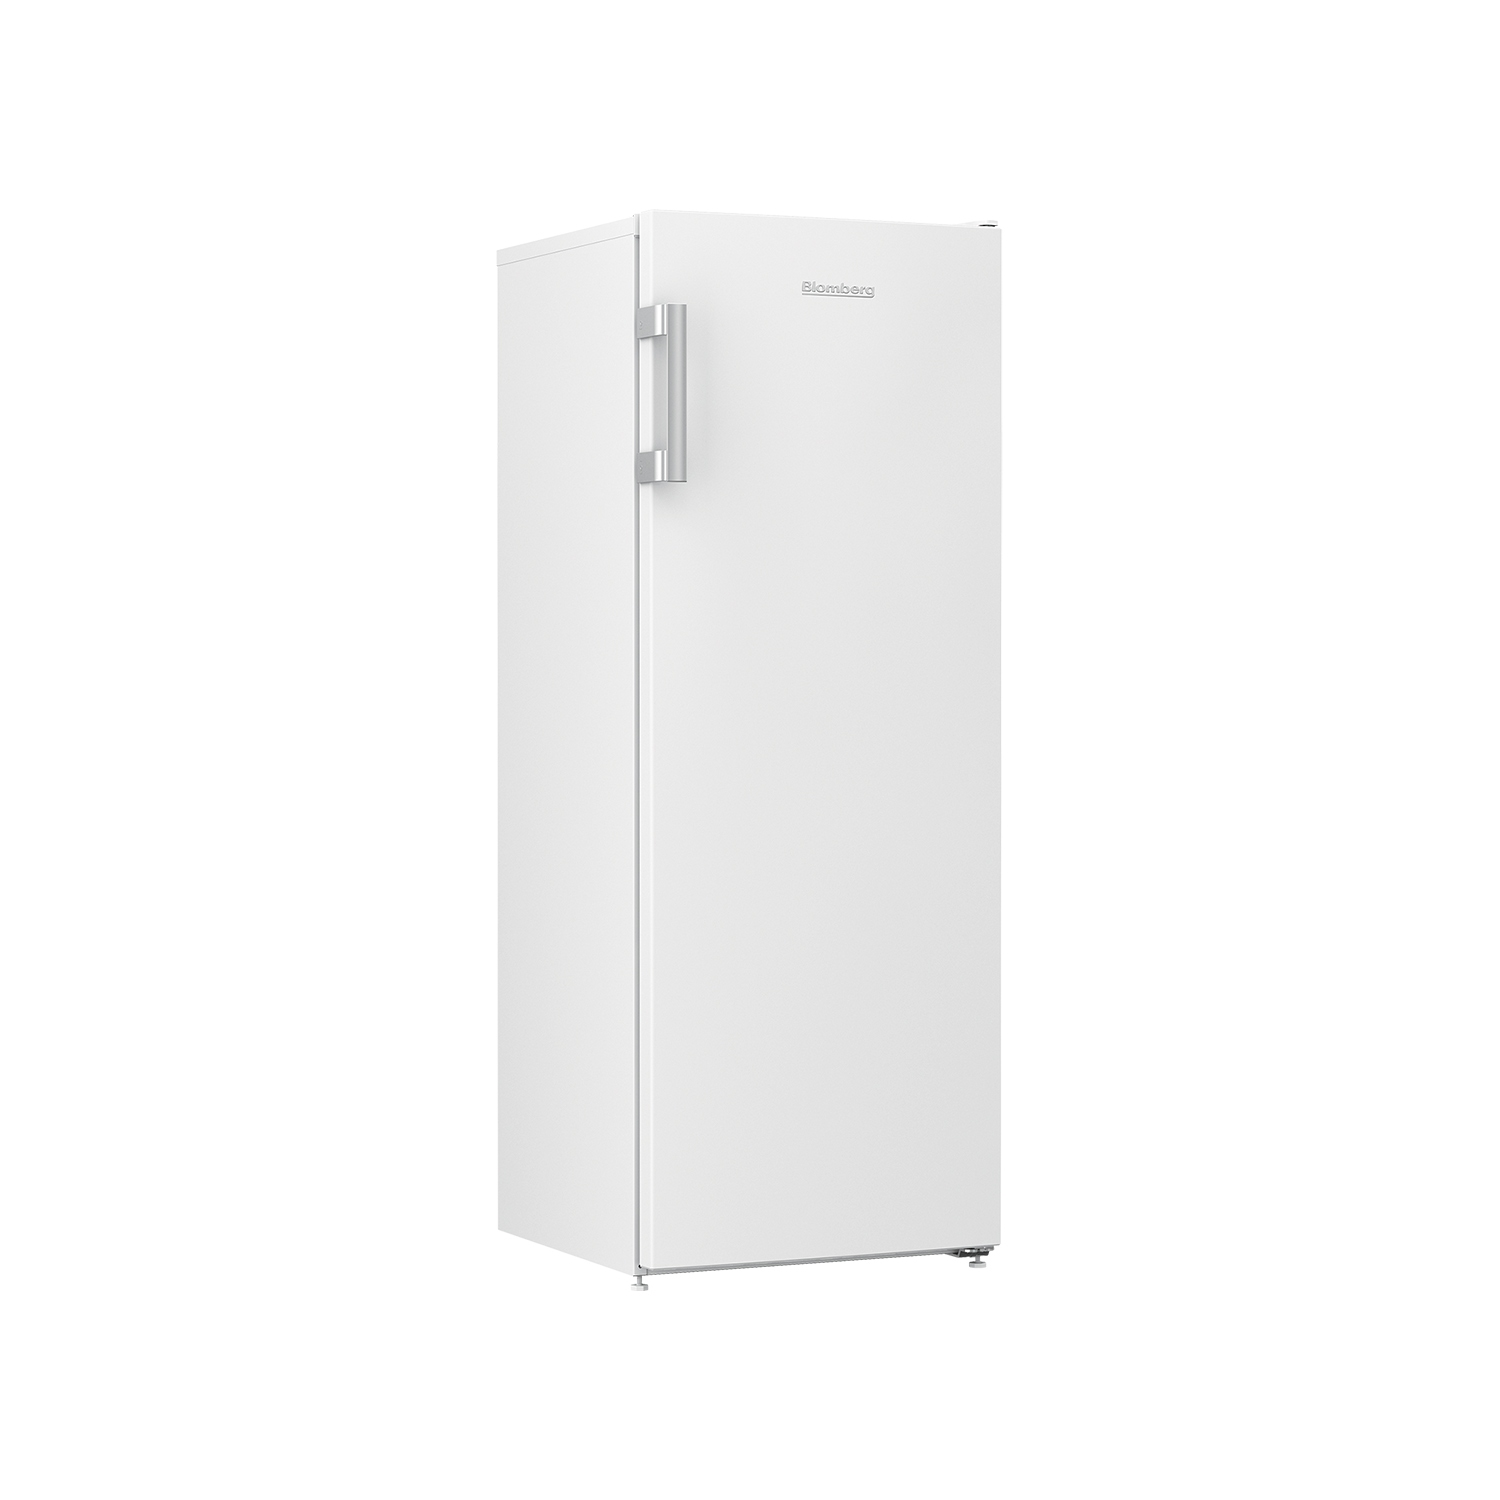 Blomberg SSM4543 54cm Tall Larder Fridge - White - 3